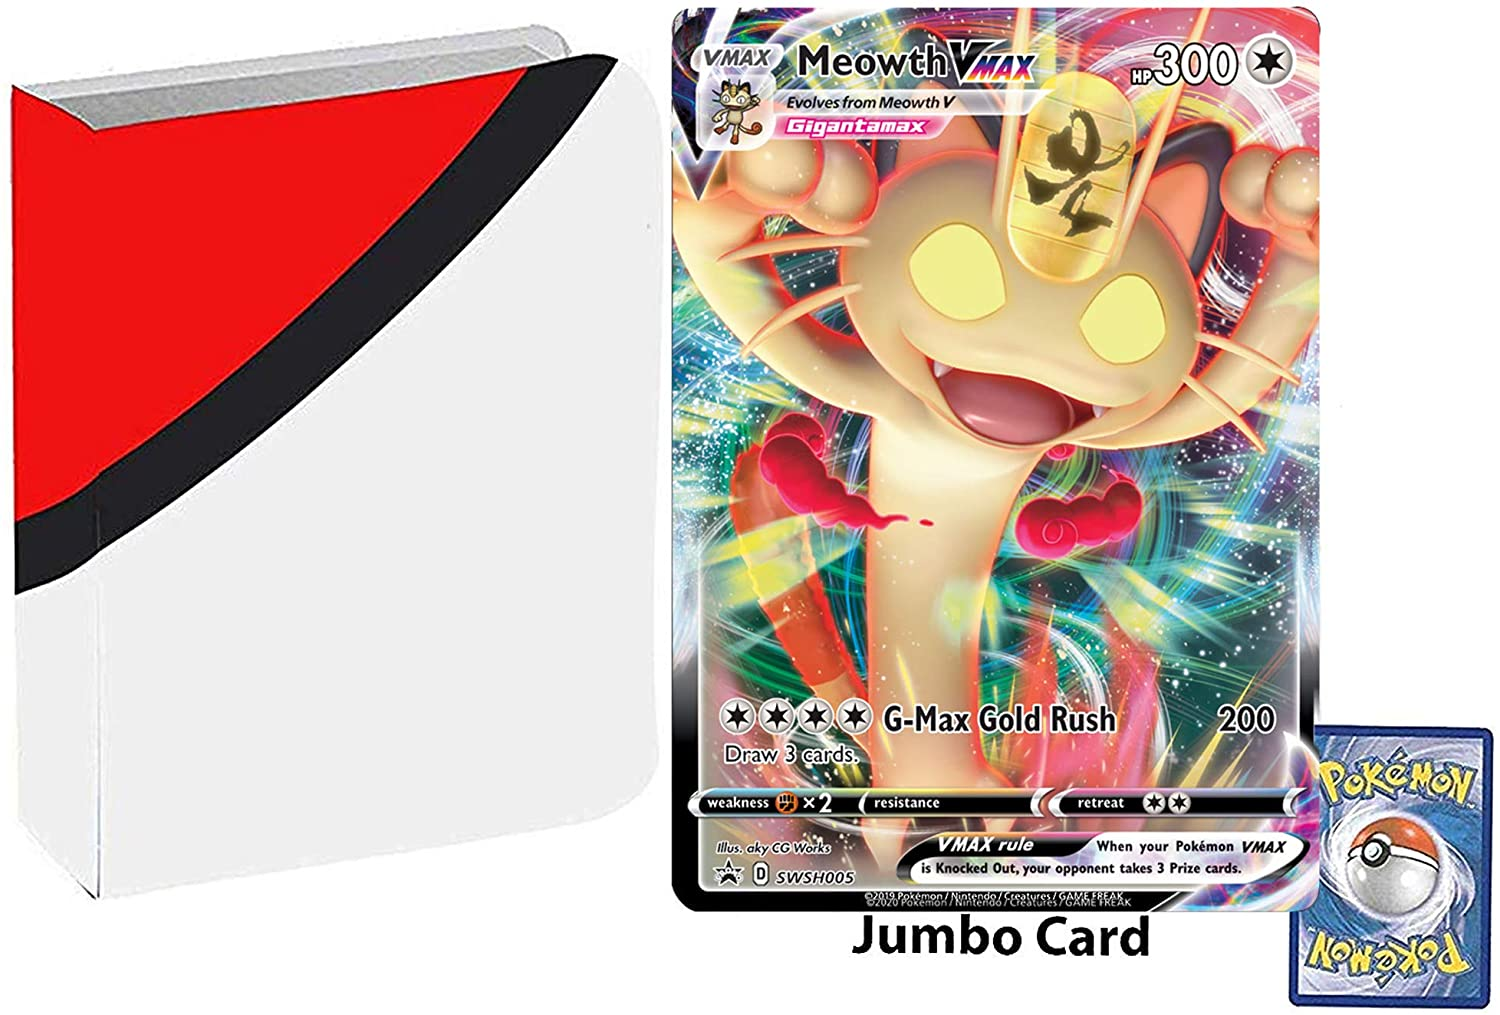 Totem World Bundle Jumbo Oversized Meowth VMAX Gigantamax Promo Pokemon Card SWSH005 with a Totem Jumbo Binder Collectors Album